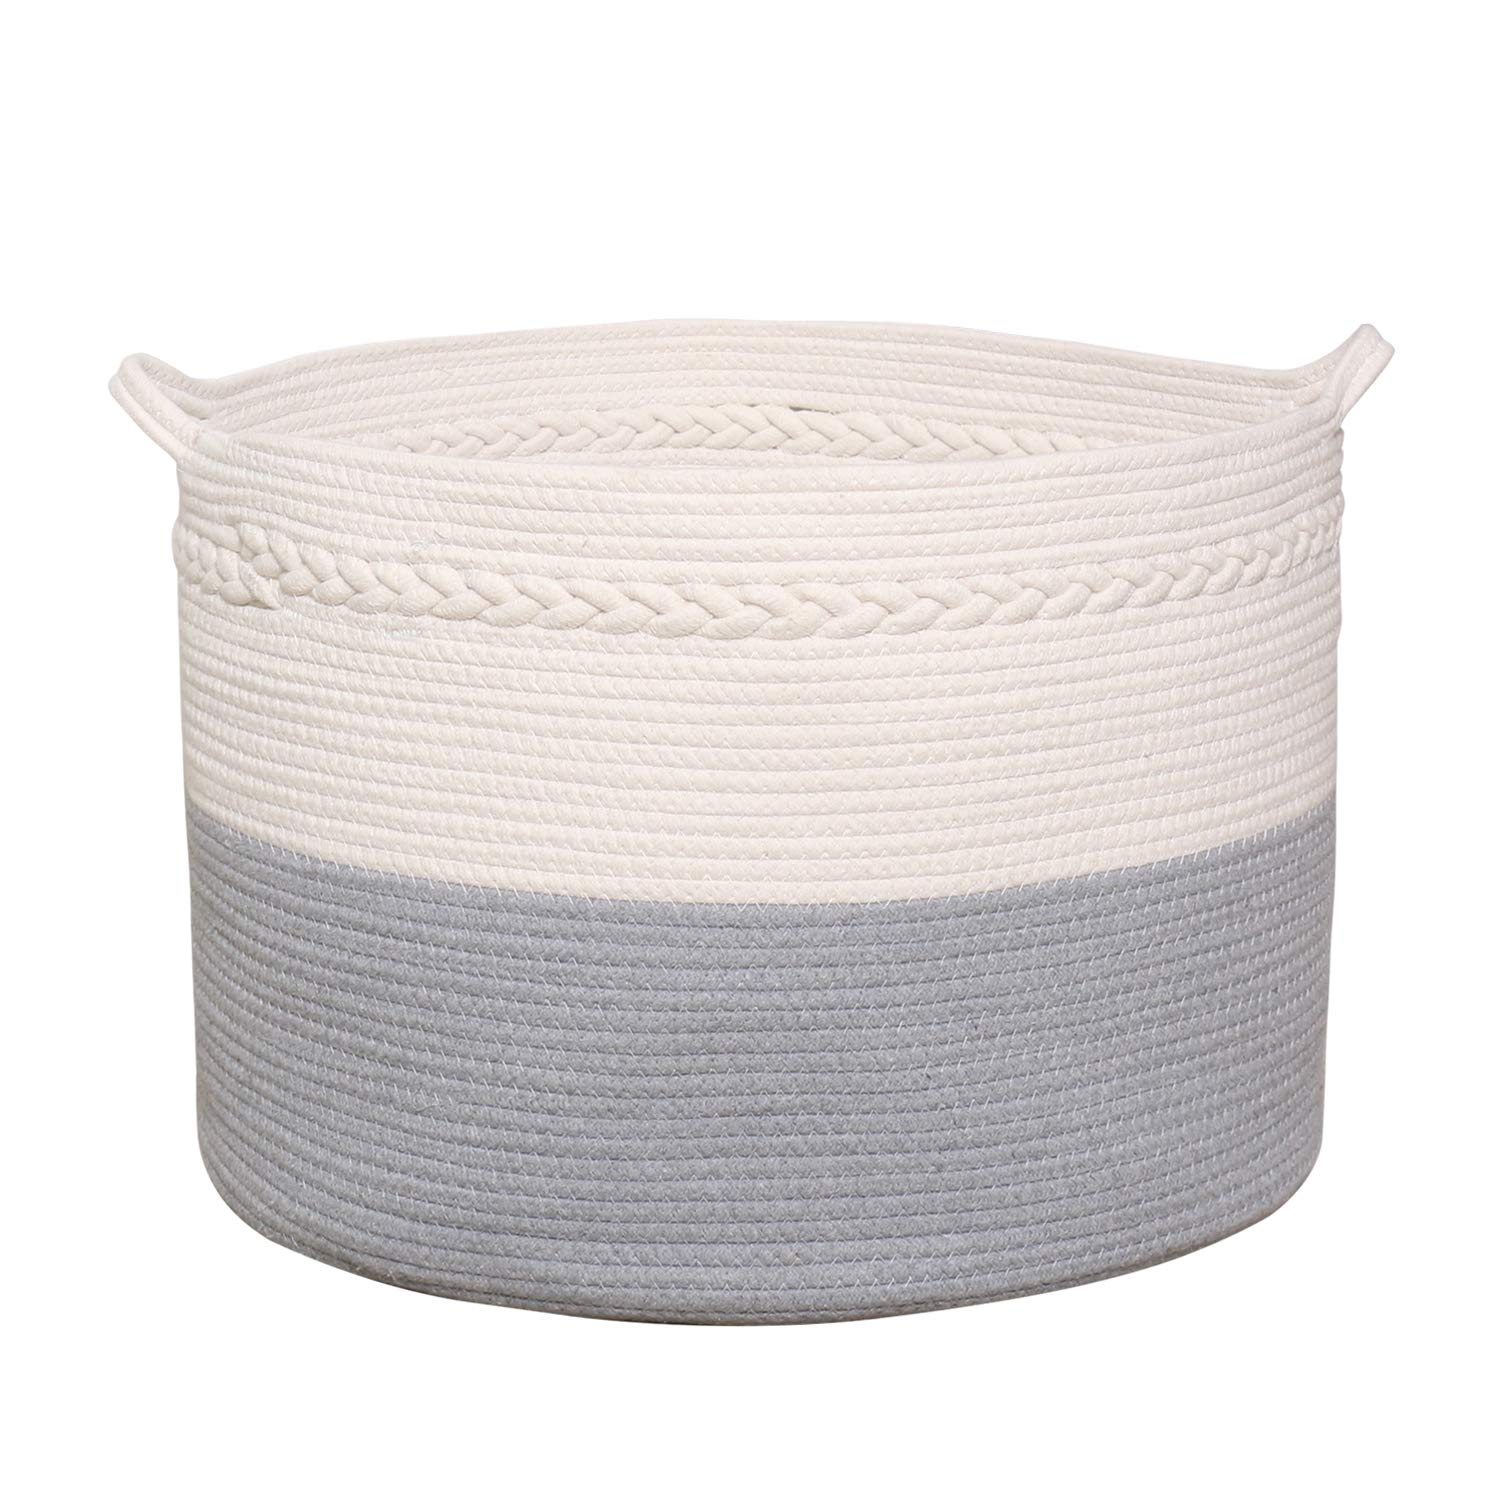 COMEMORY Cotton Rope Basket, 20 x 14 inch Laundry Blanket Storage Basket with Built-in Handles and Decorative Braid, Baby Nursery Bin for Home Décor and Organizing